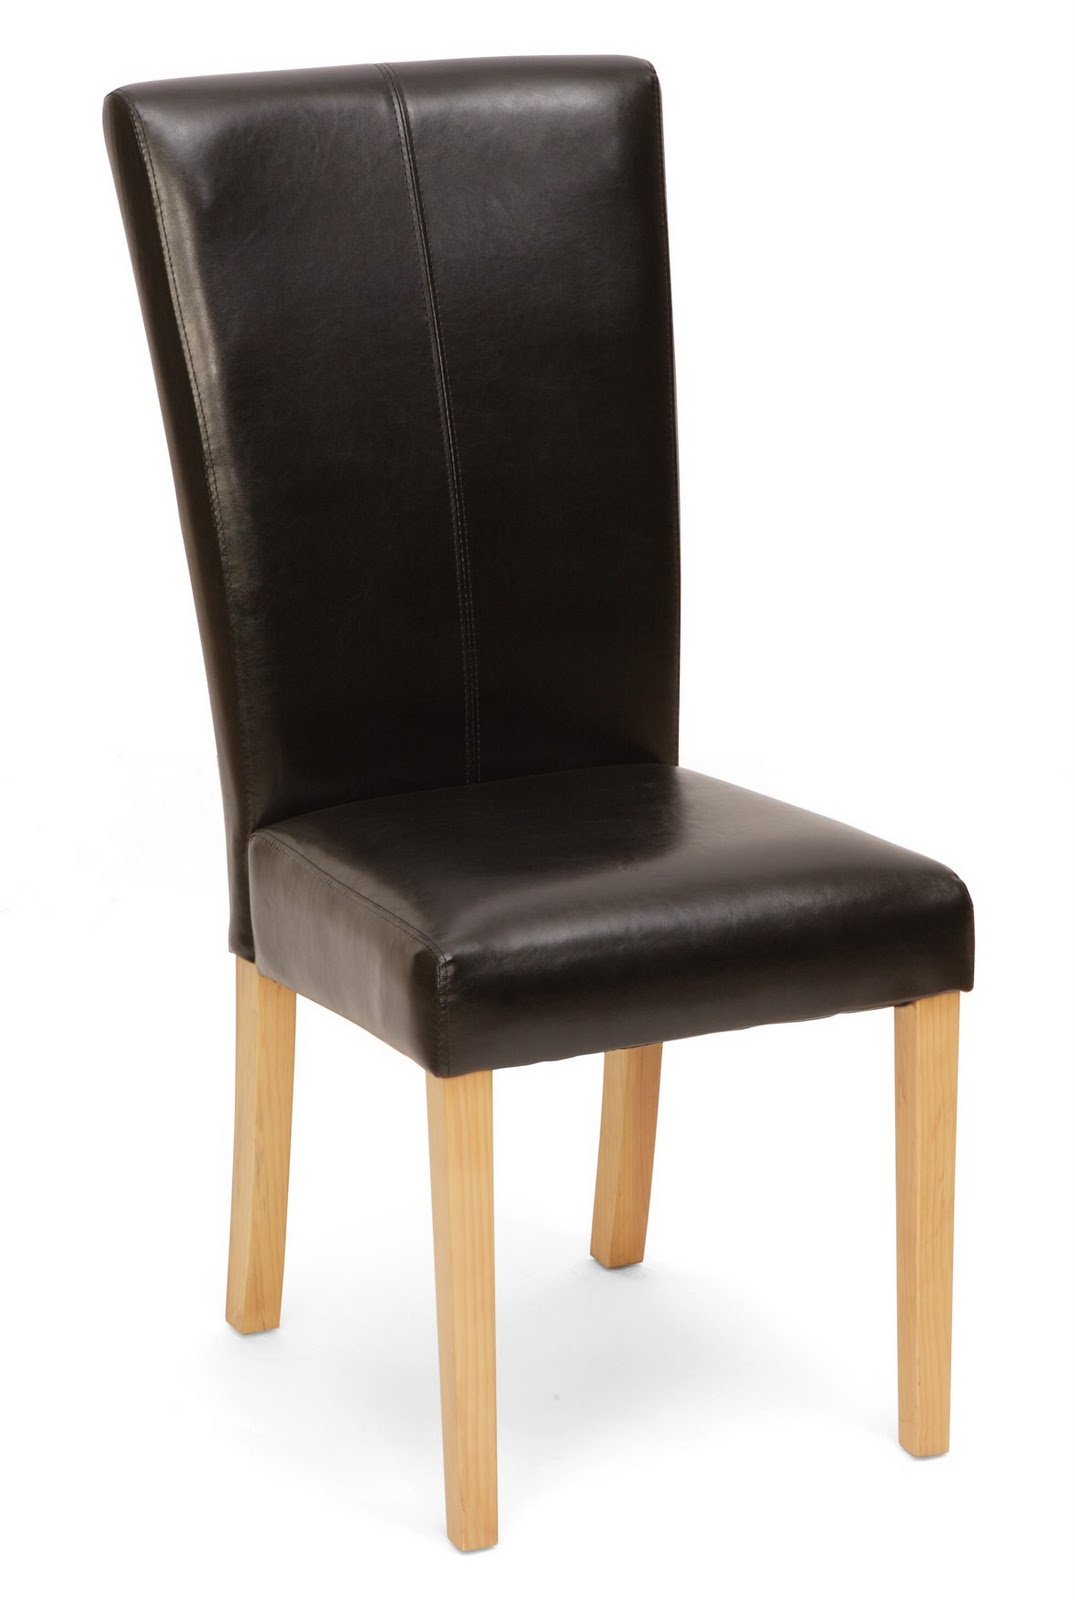 Furniture hire rental new dining chairs in